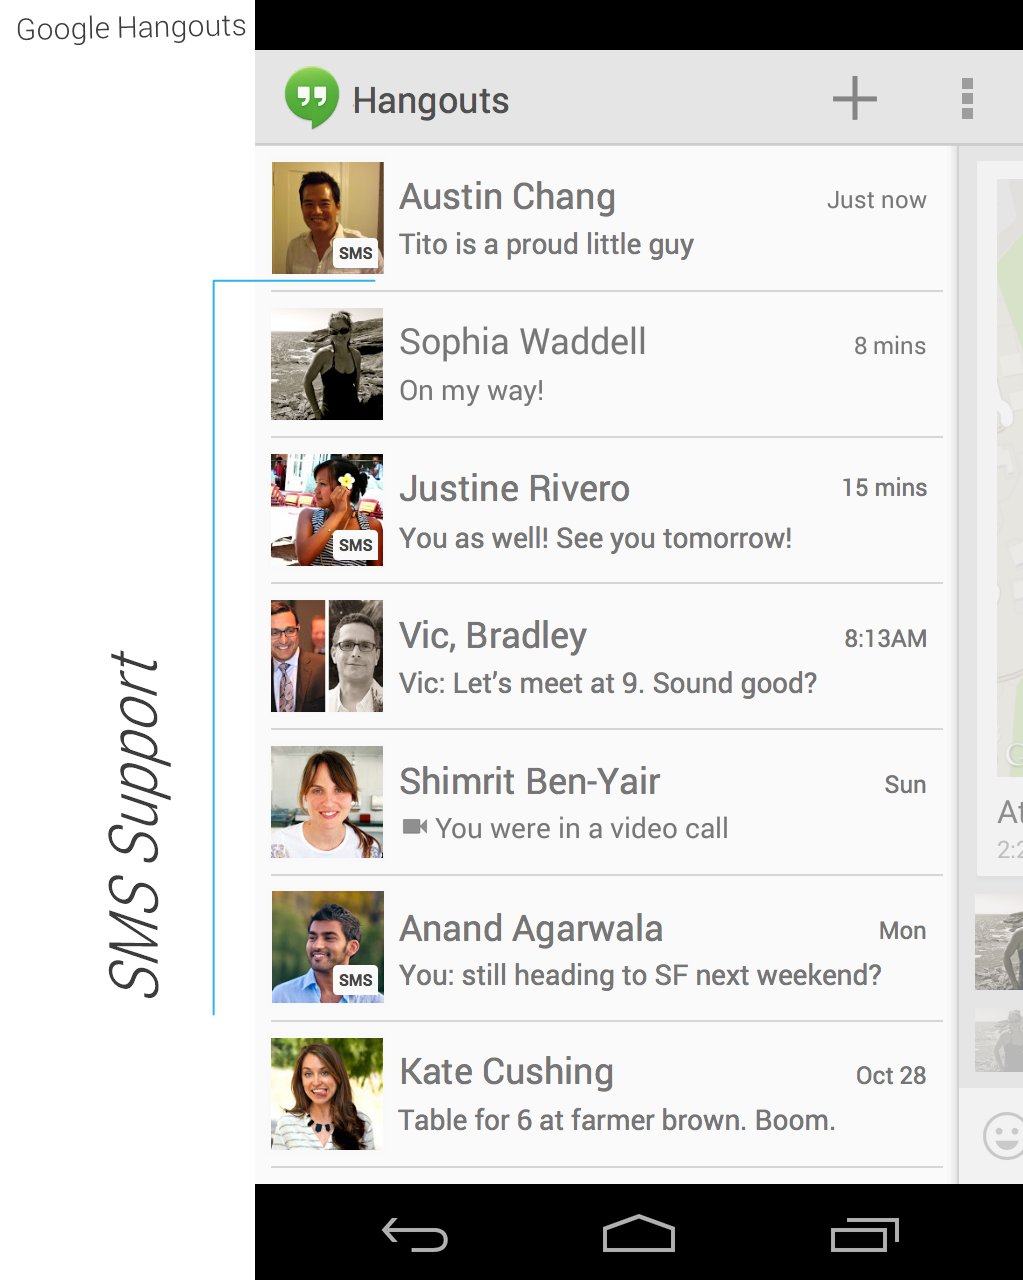 Hangouts 1.3 APK with SMS Support